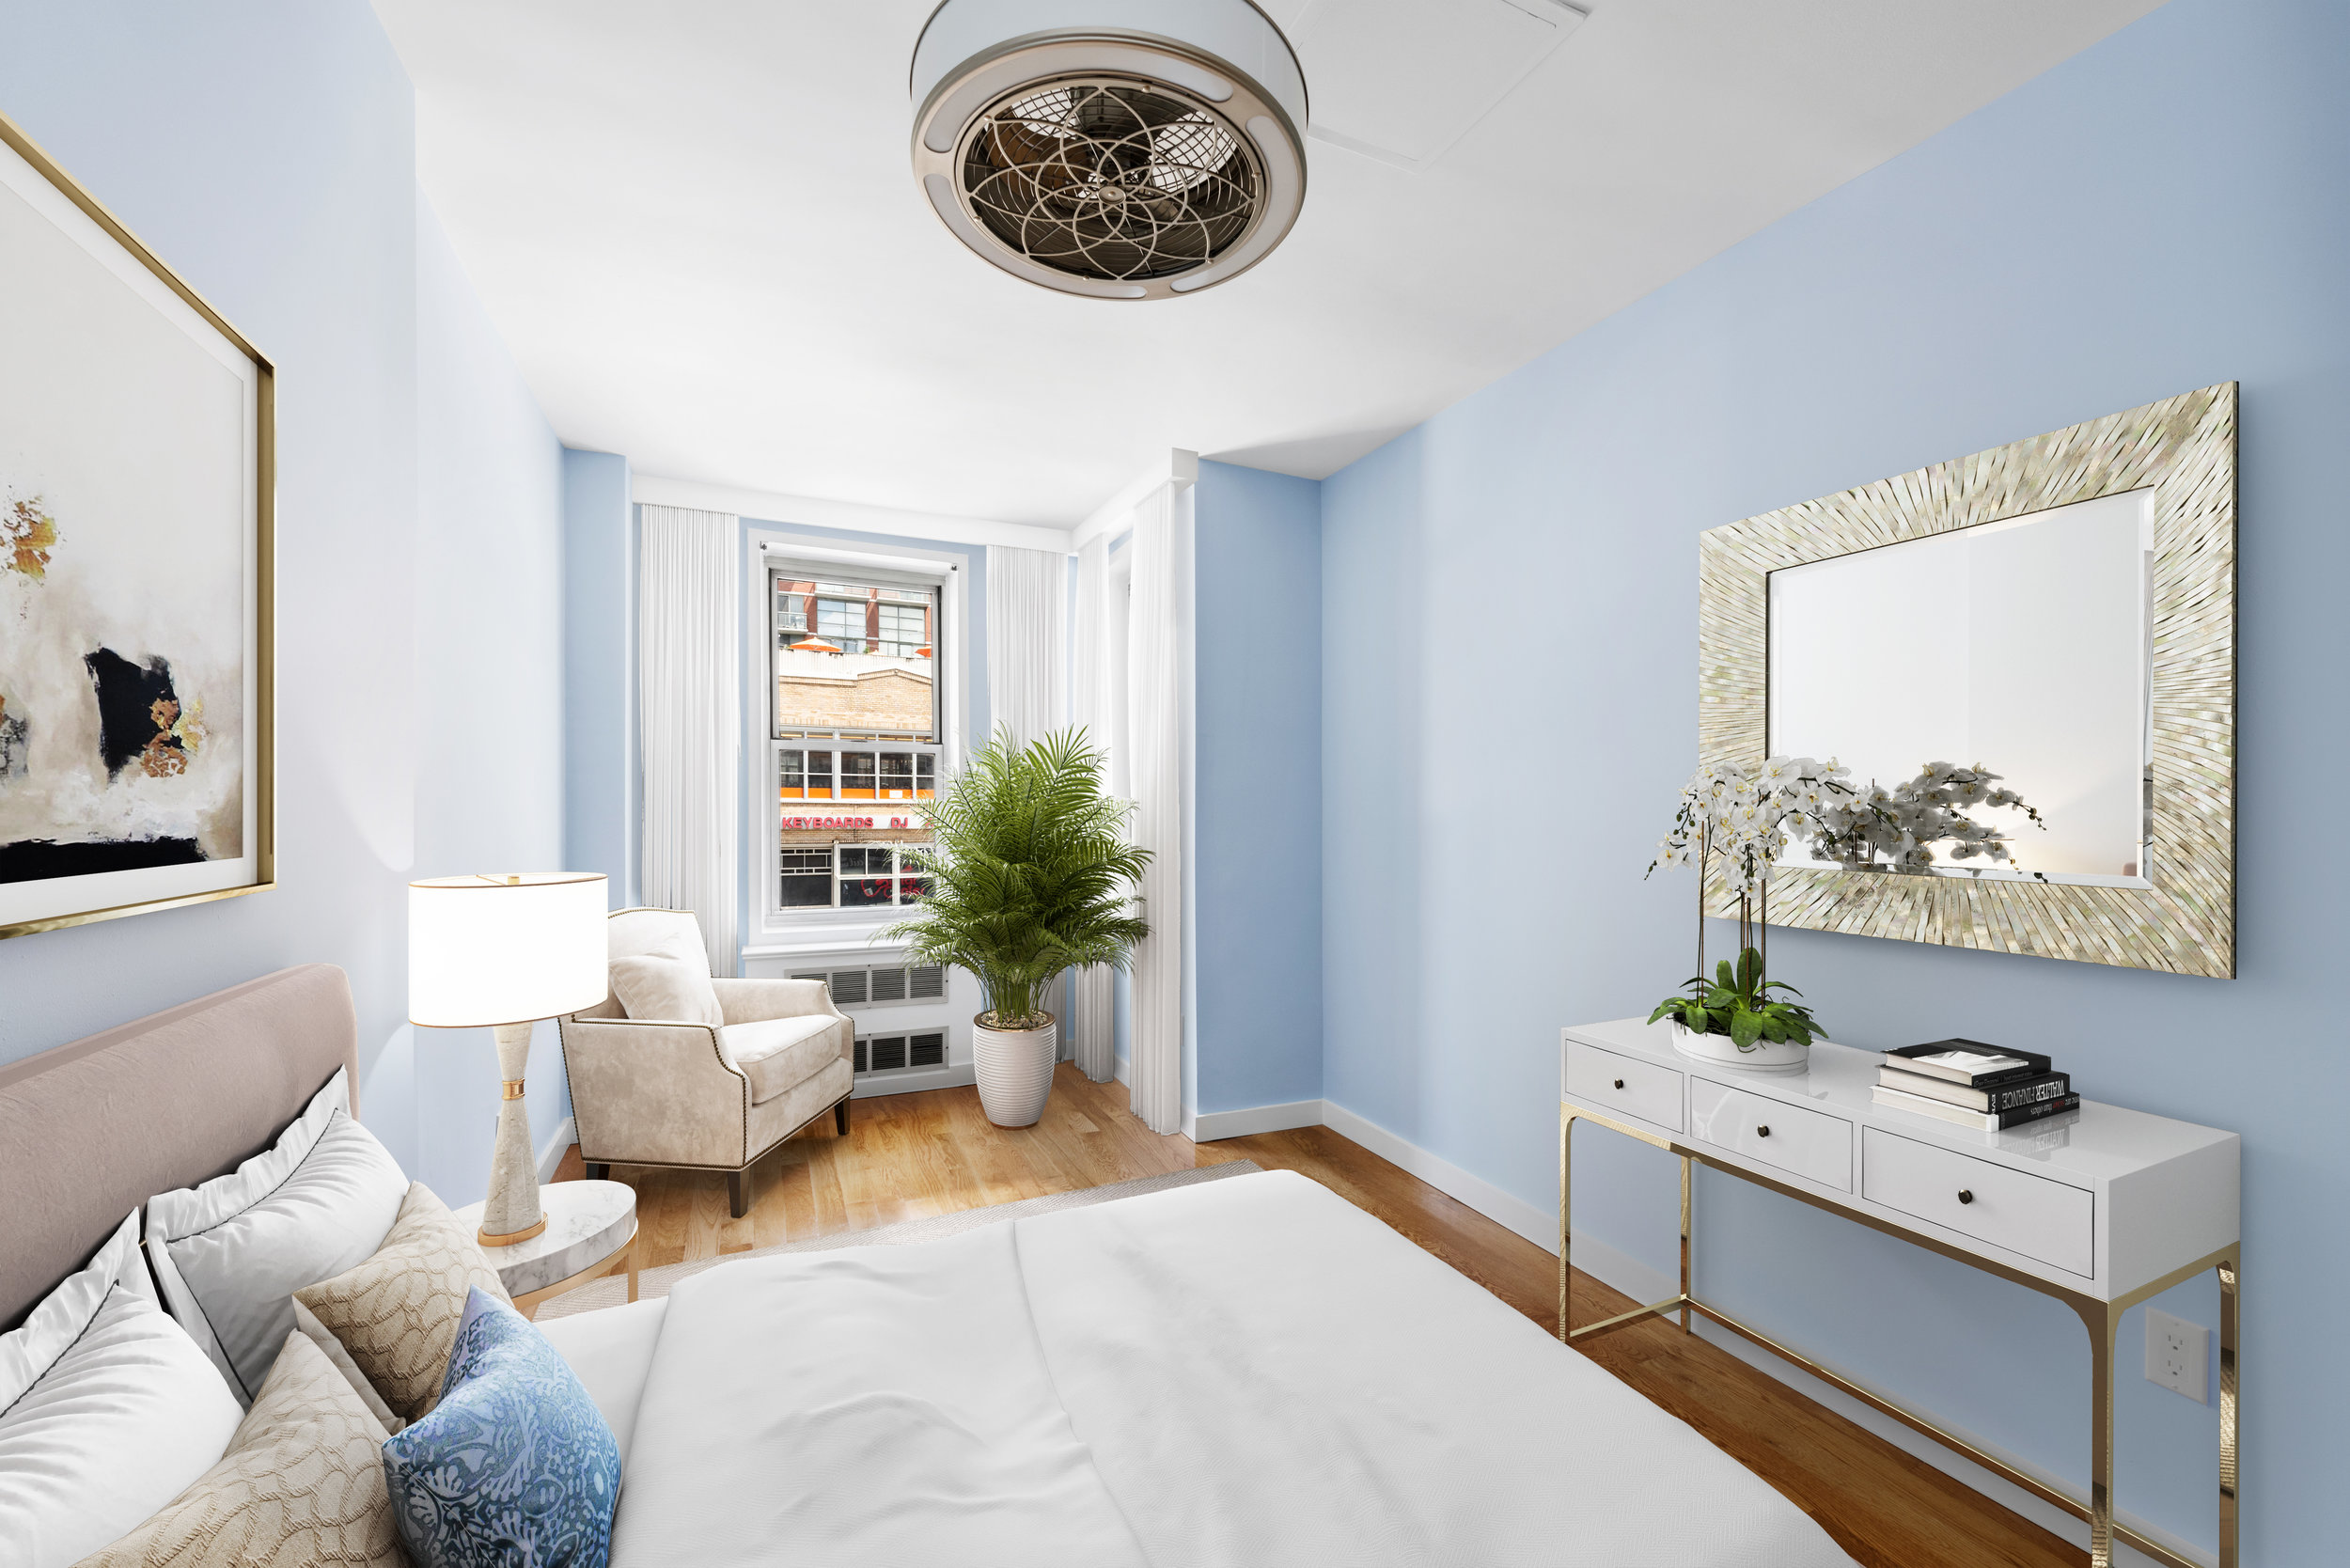 Union Square bedroom blue 2 by Bolster.jpg